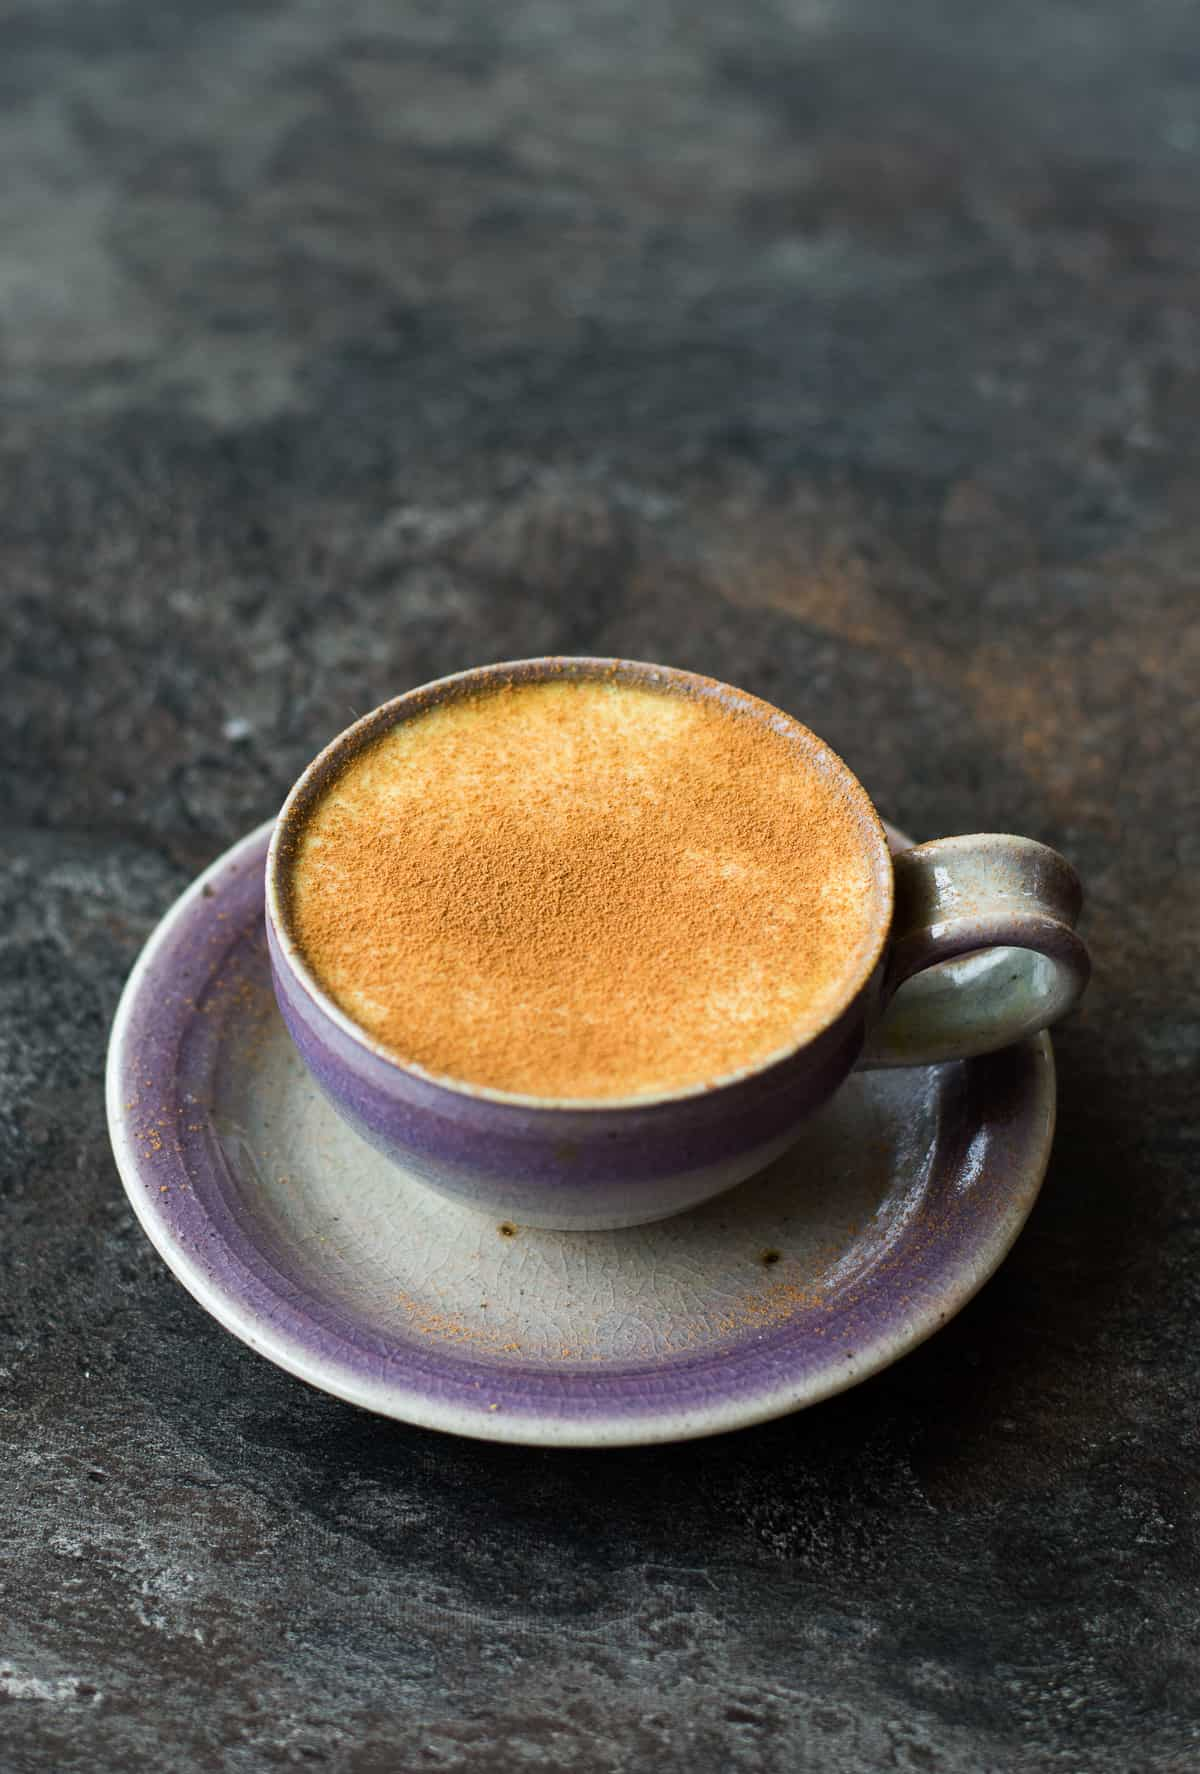 Turmeric Coffee Latte in a purple/light blue cup and saucer on dark backgroud